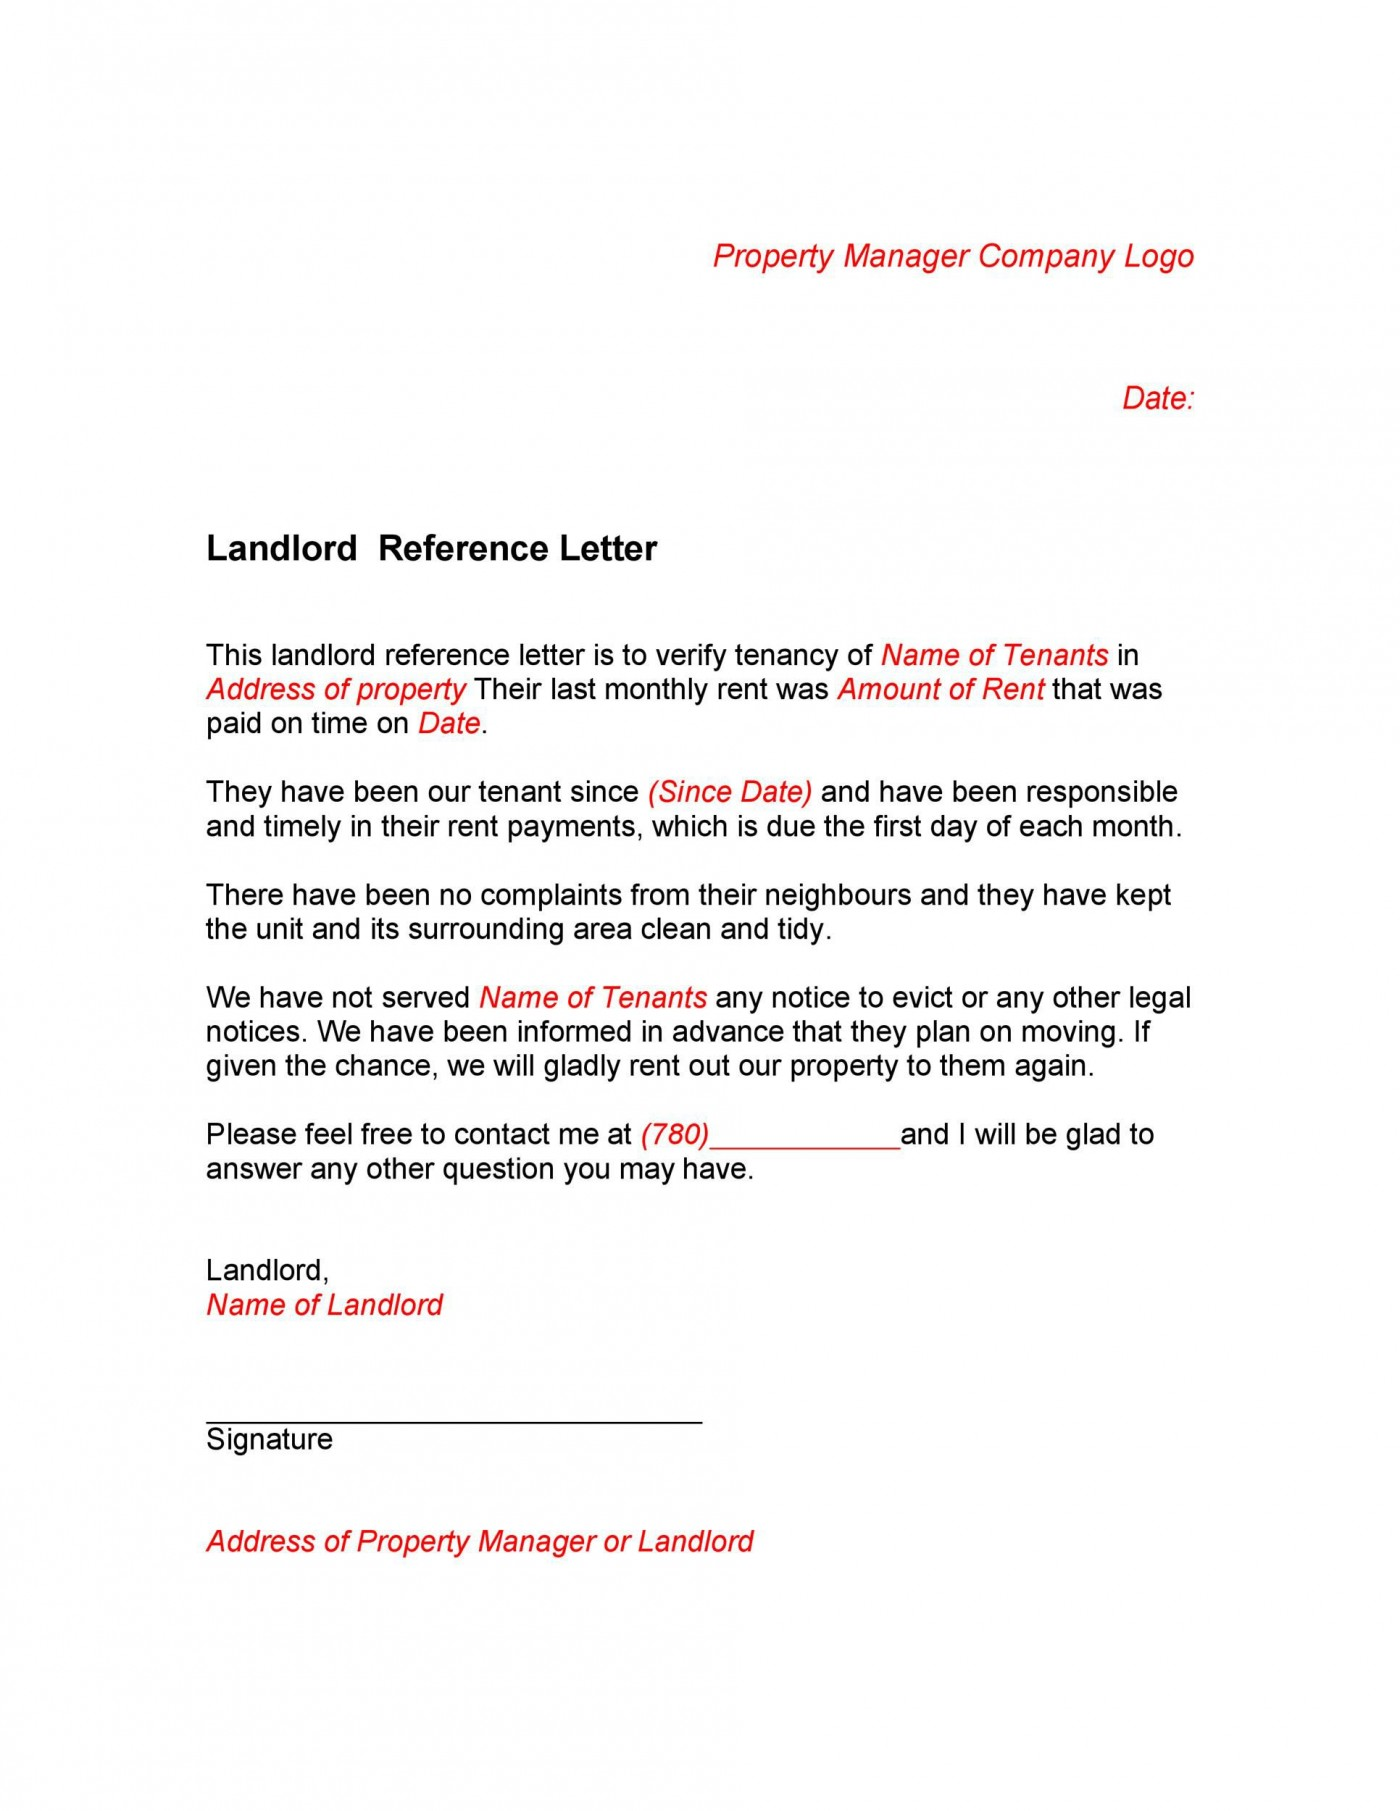 005 Staggering Free Reference Letter Template For Landlord Design  Rental1400